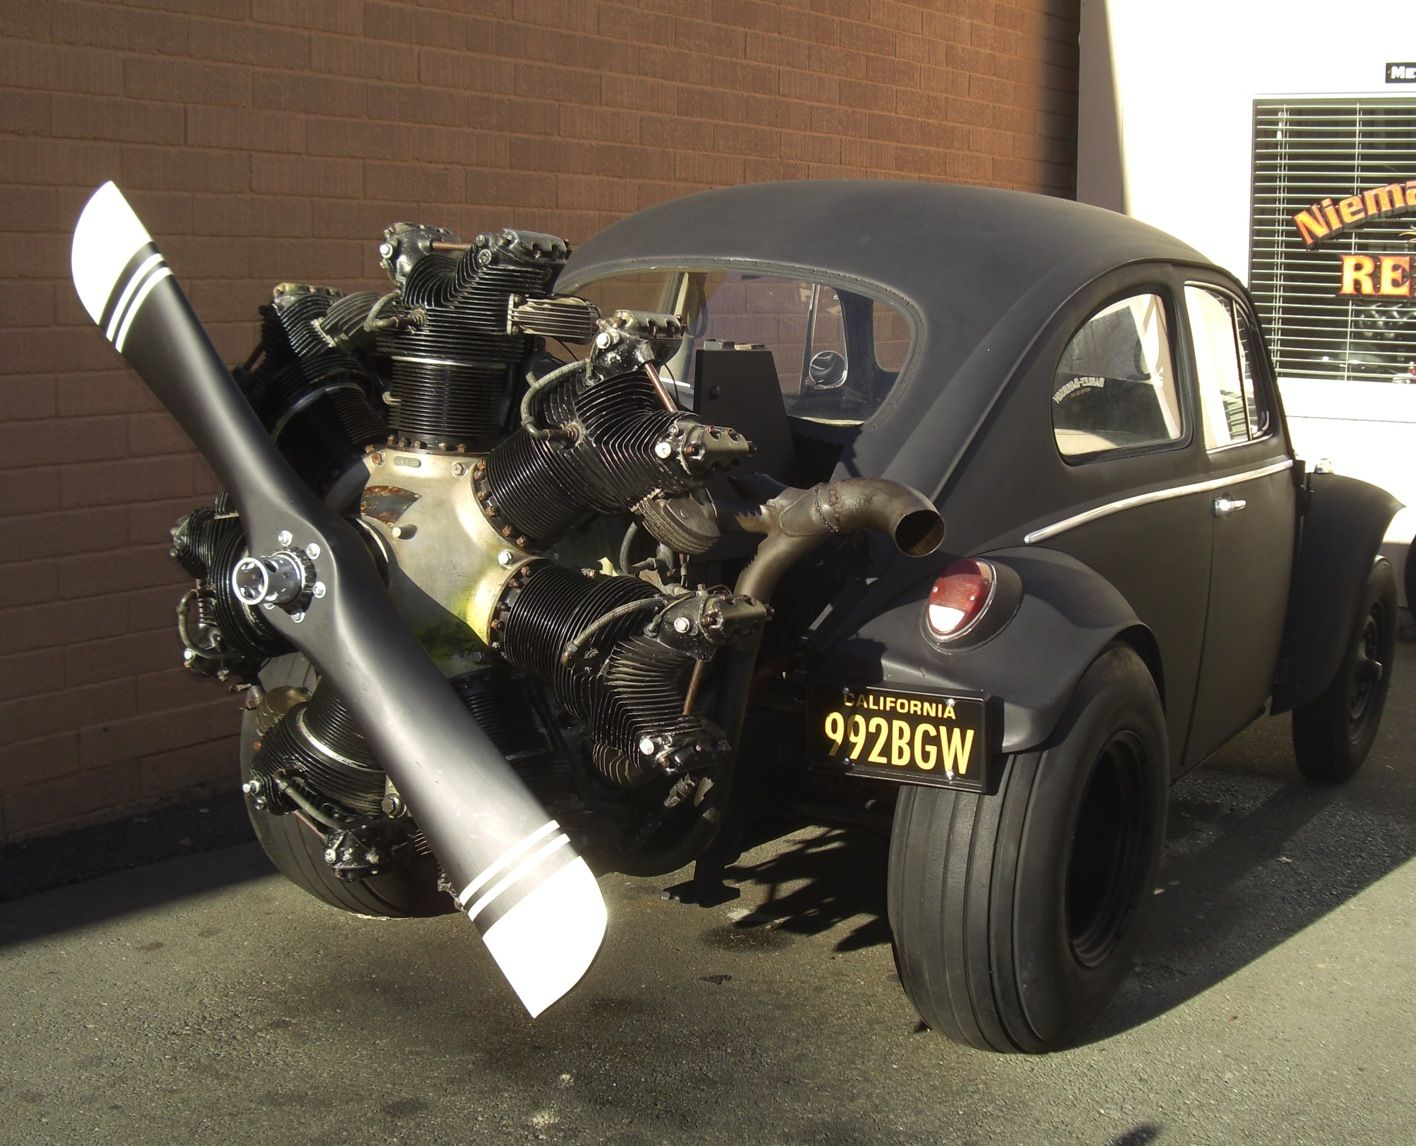 Special cars volkswagen beetle bug v8 - Vw Beetles Vw With Radial Engine We Once Had A Guy Put A Windup Key On Our